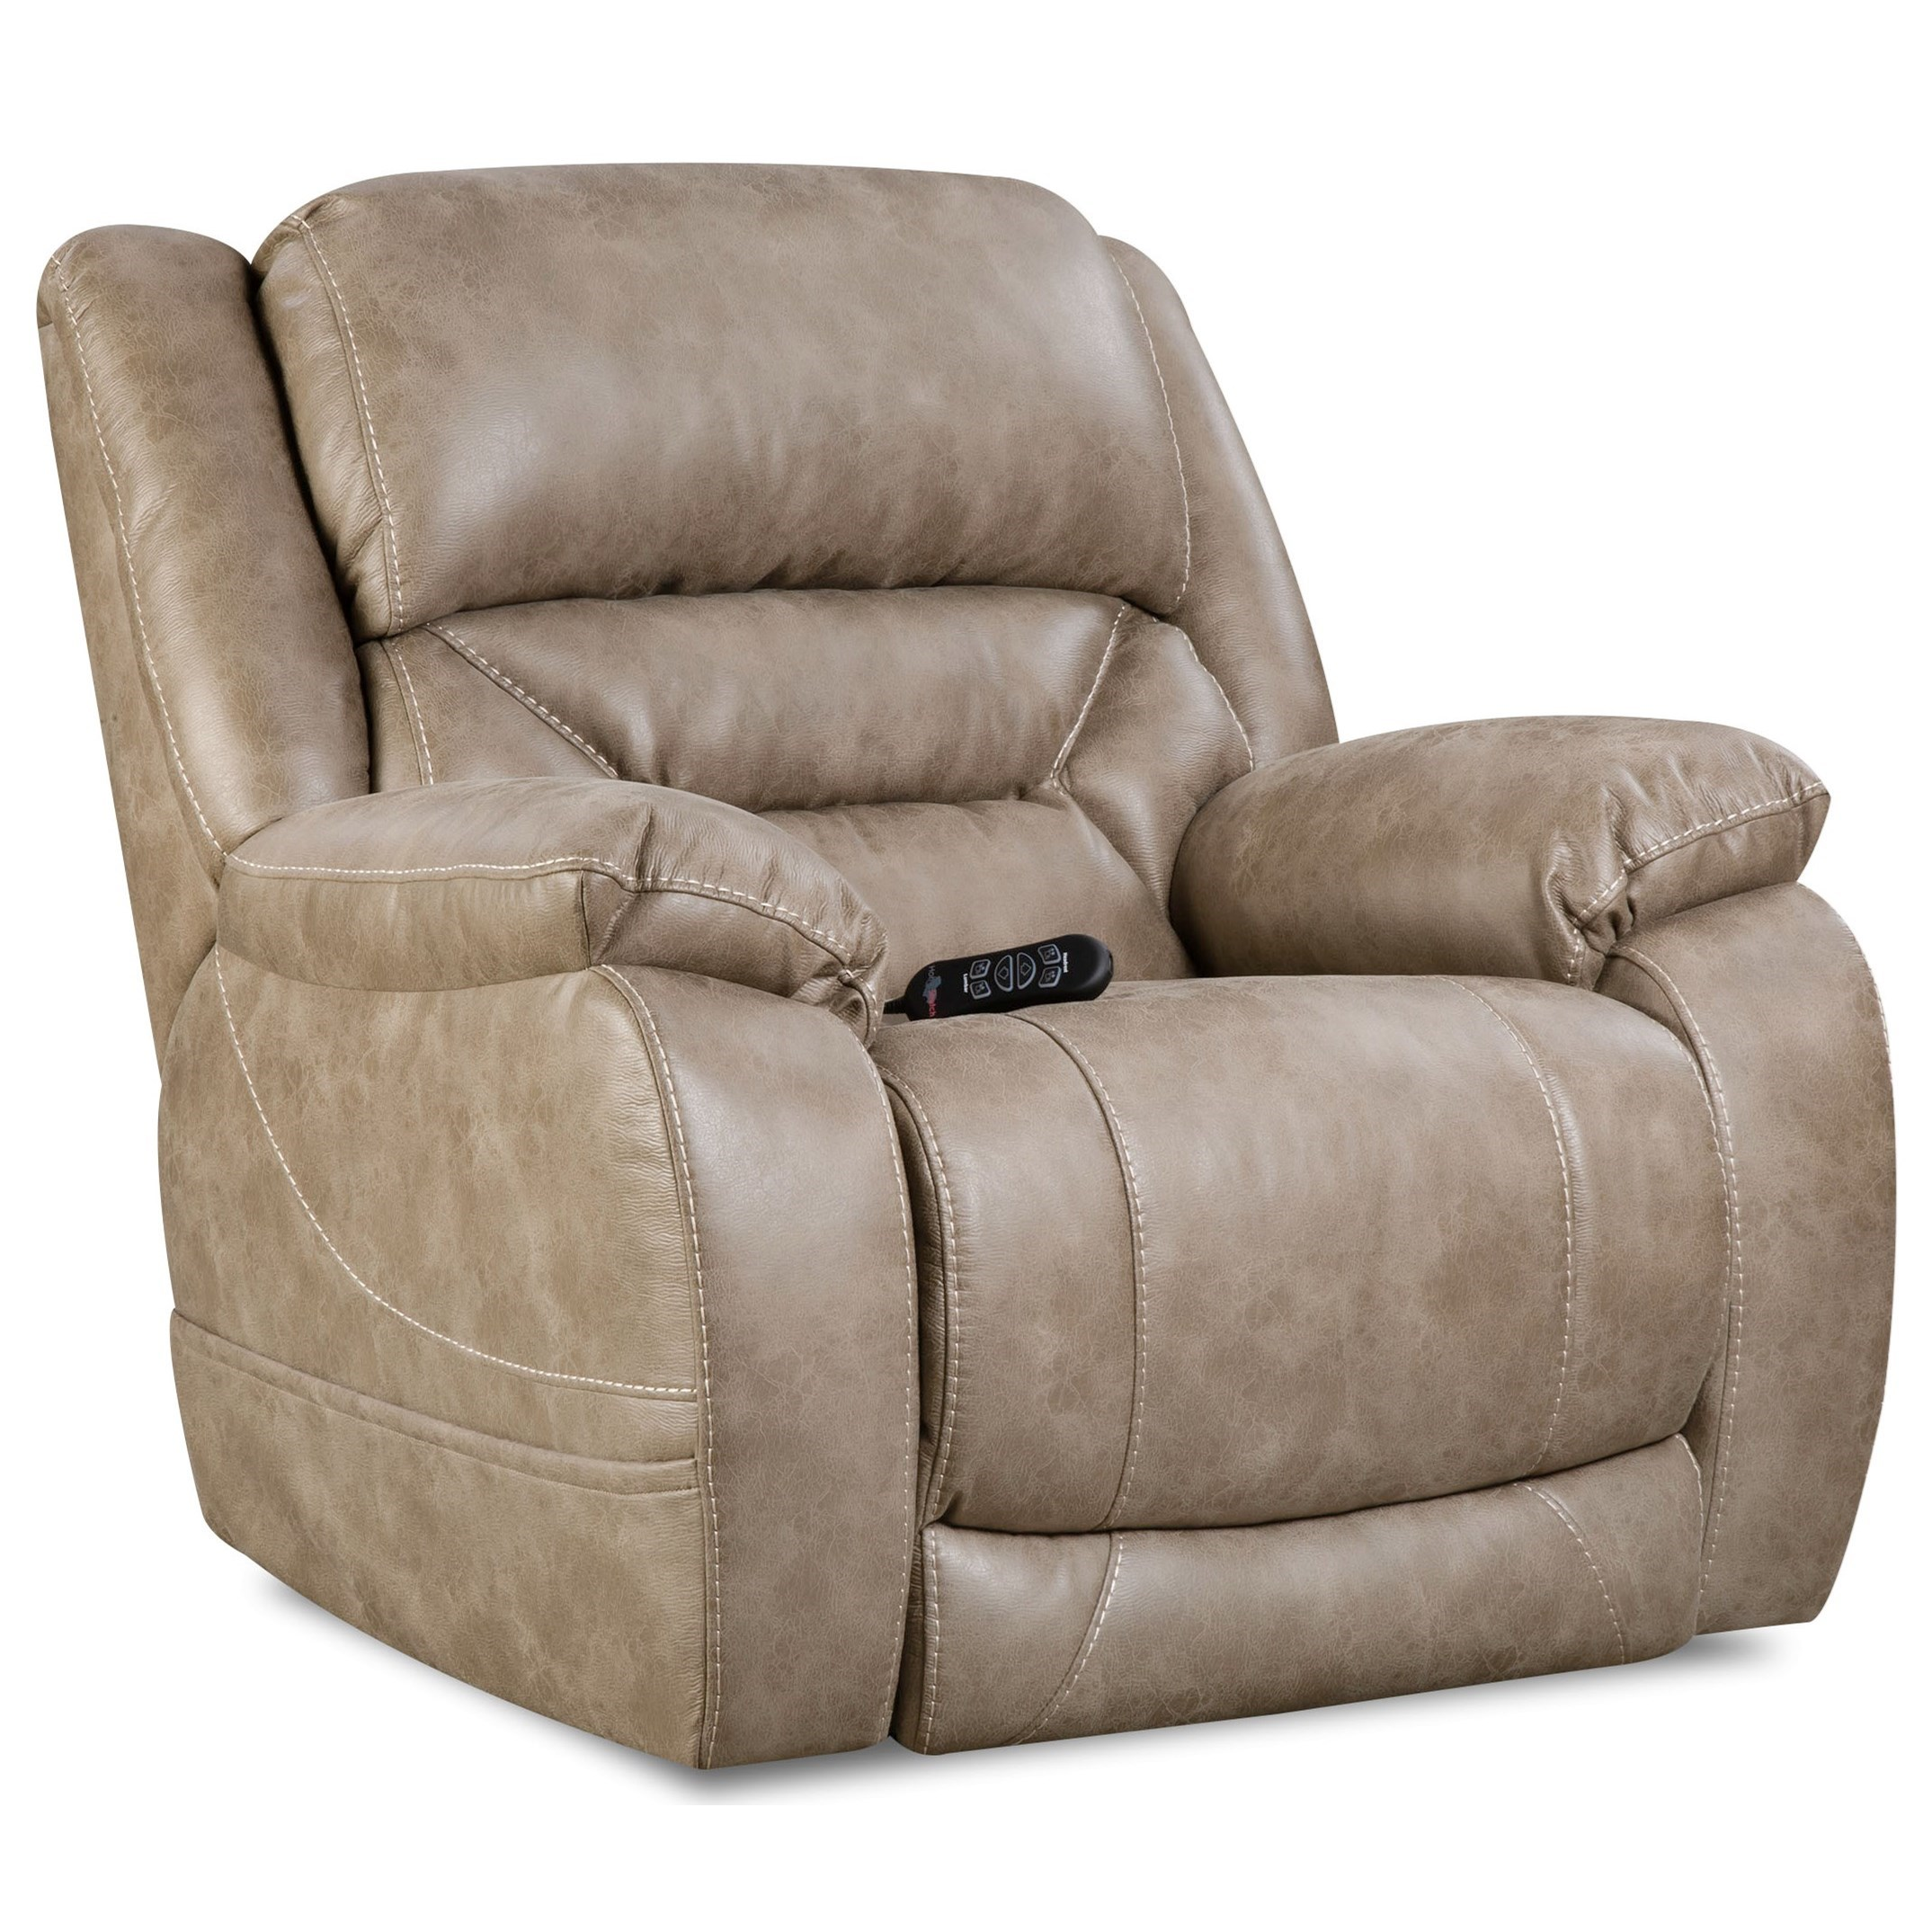 Enterprise Power Recliner by HomeStretch at Johnny Janosik